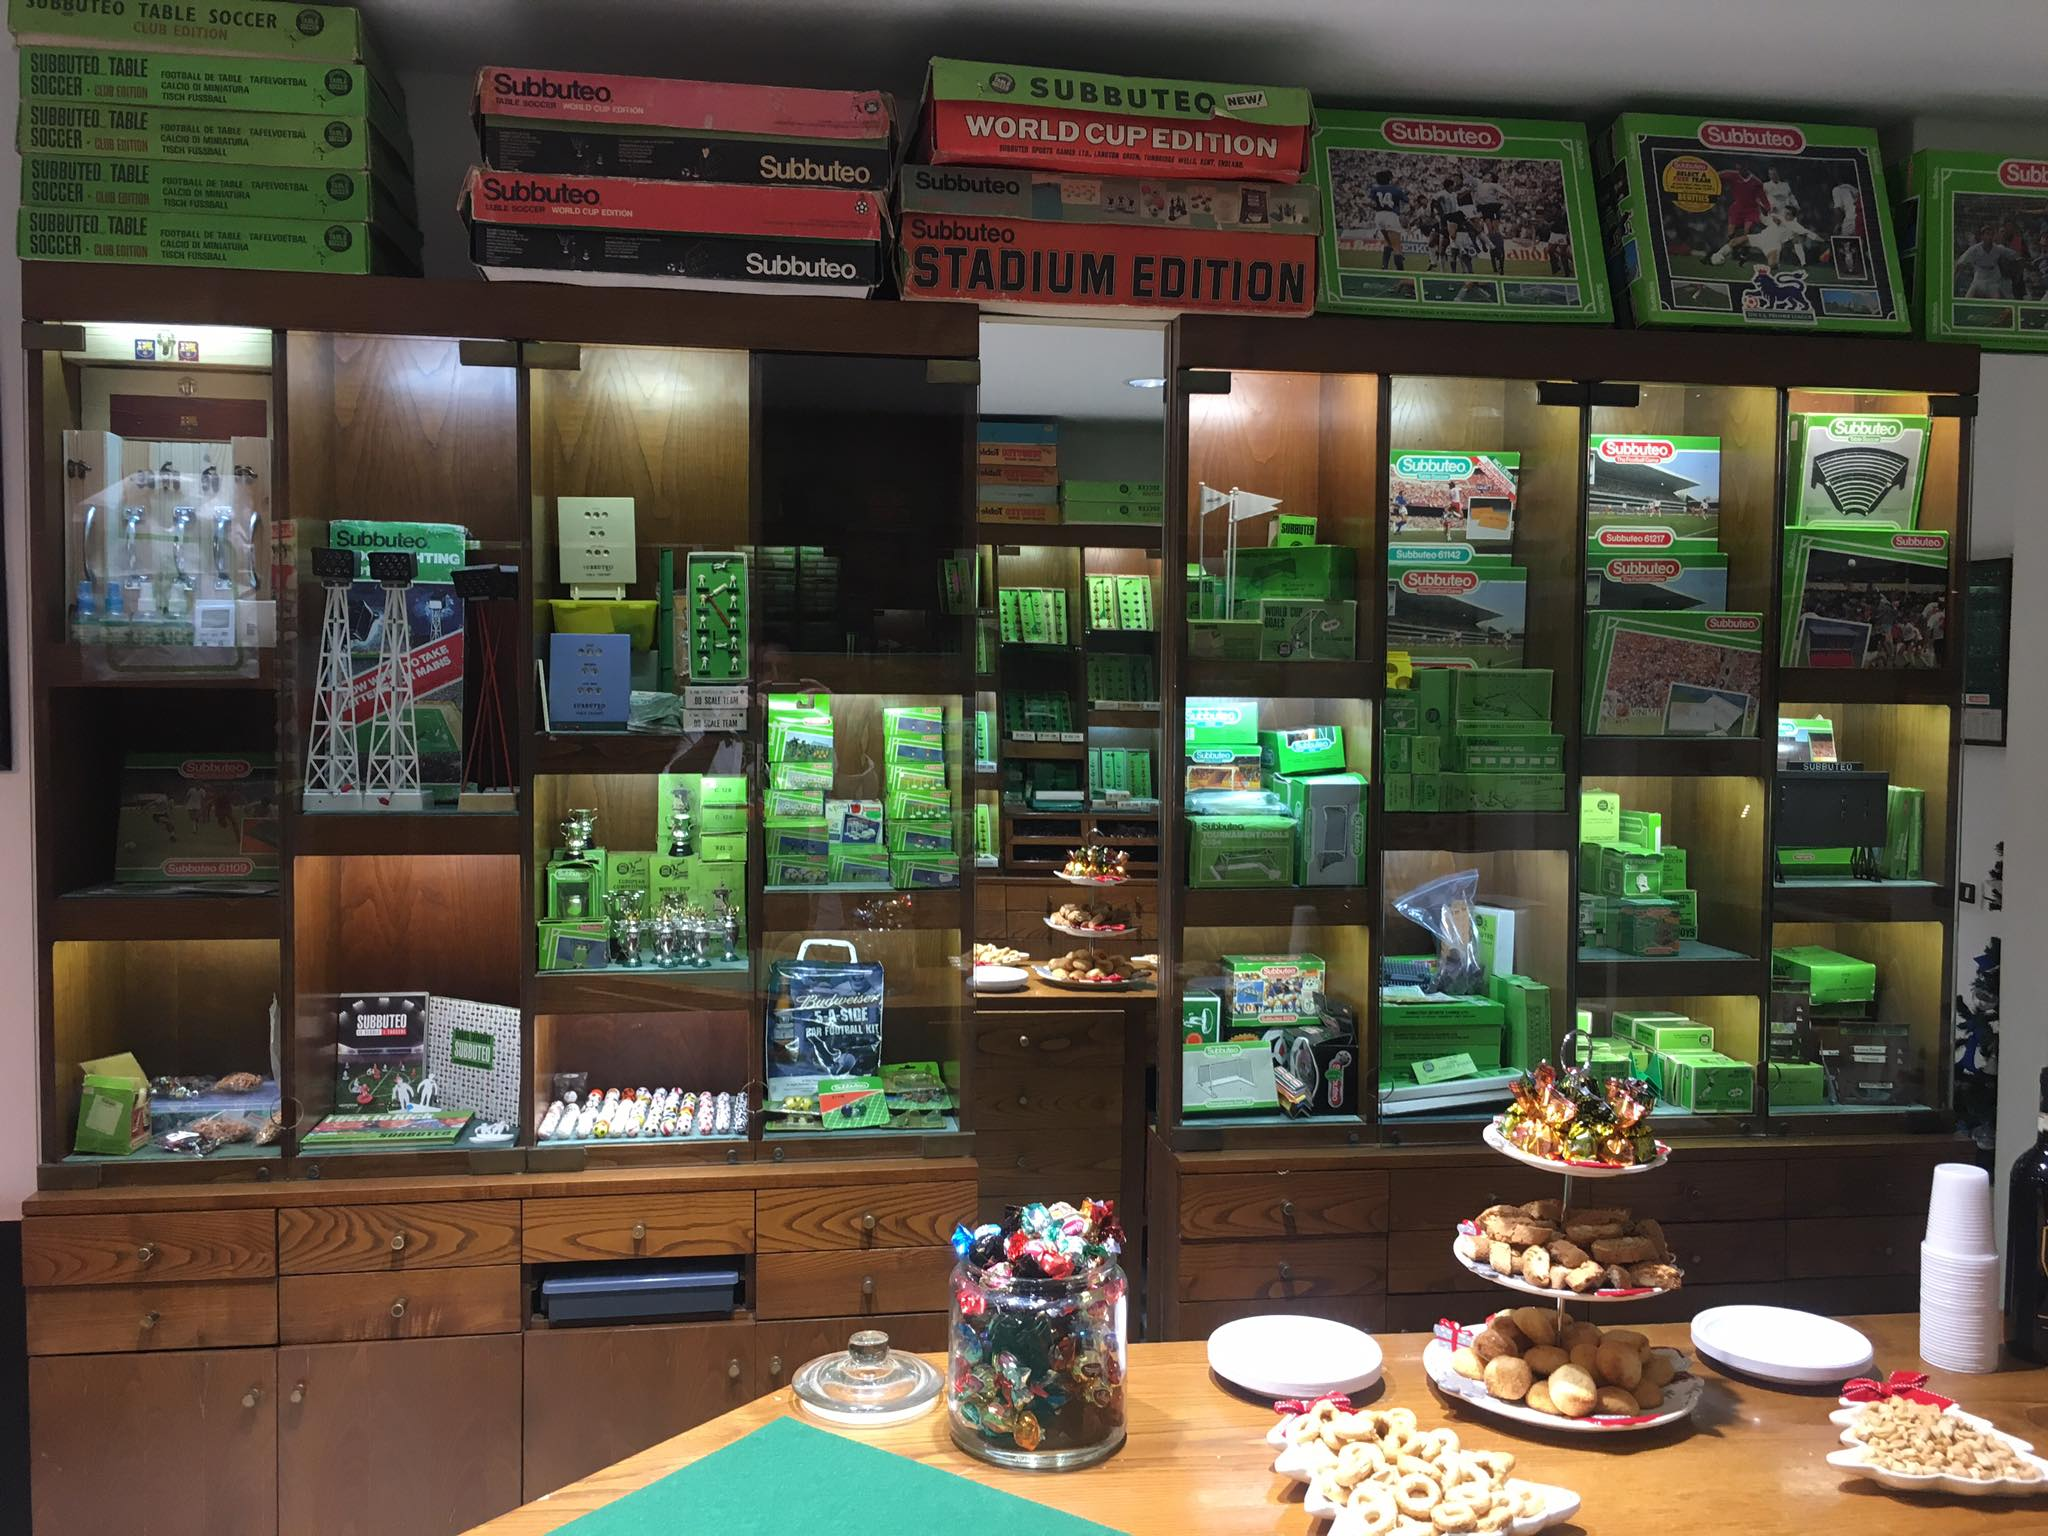 A Subbuteo shop has opened and it looks amazing